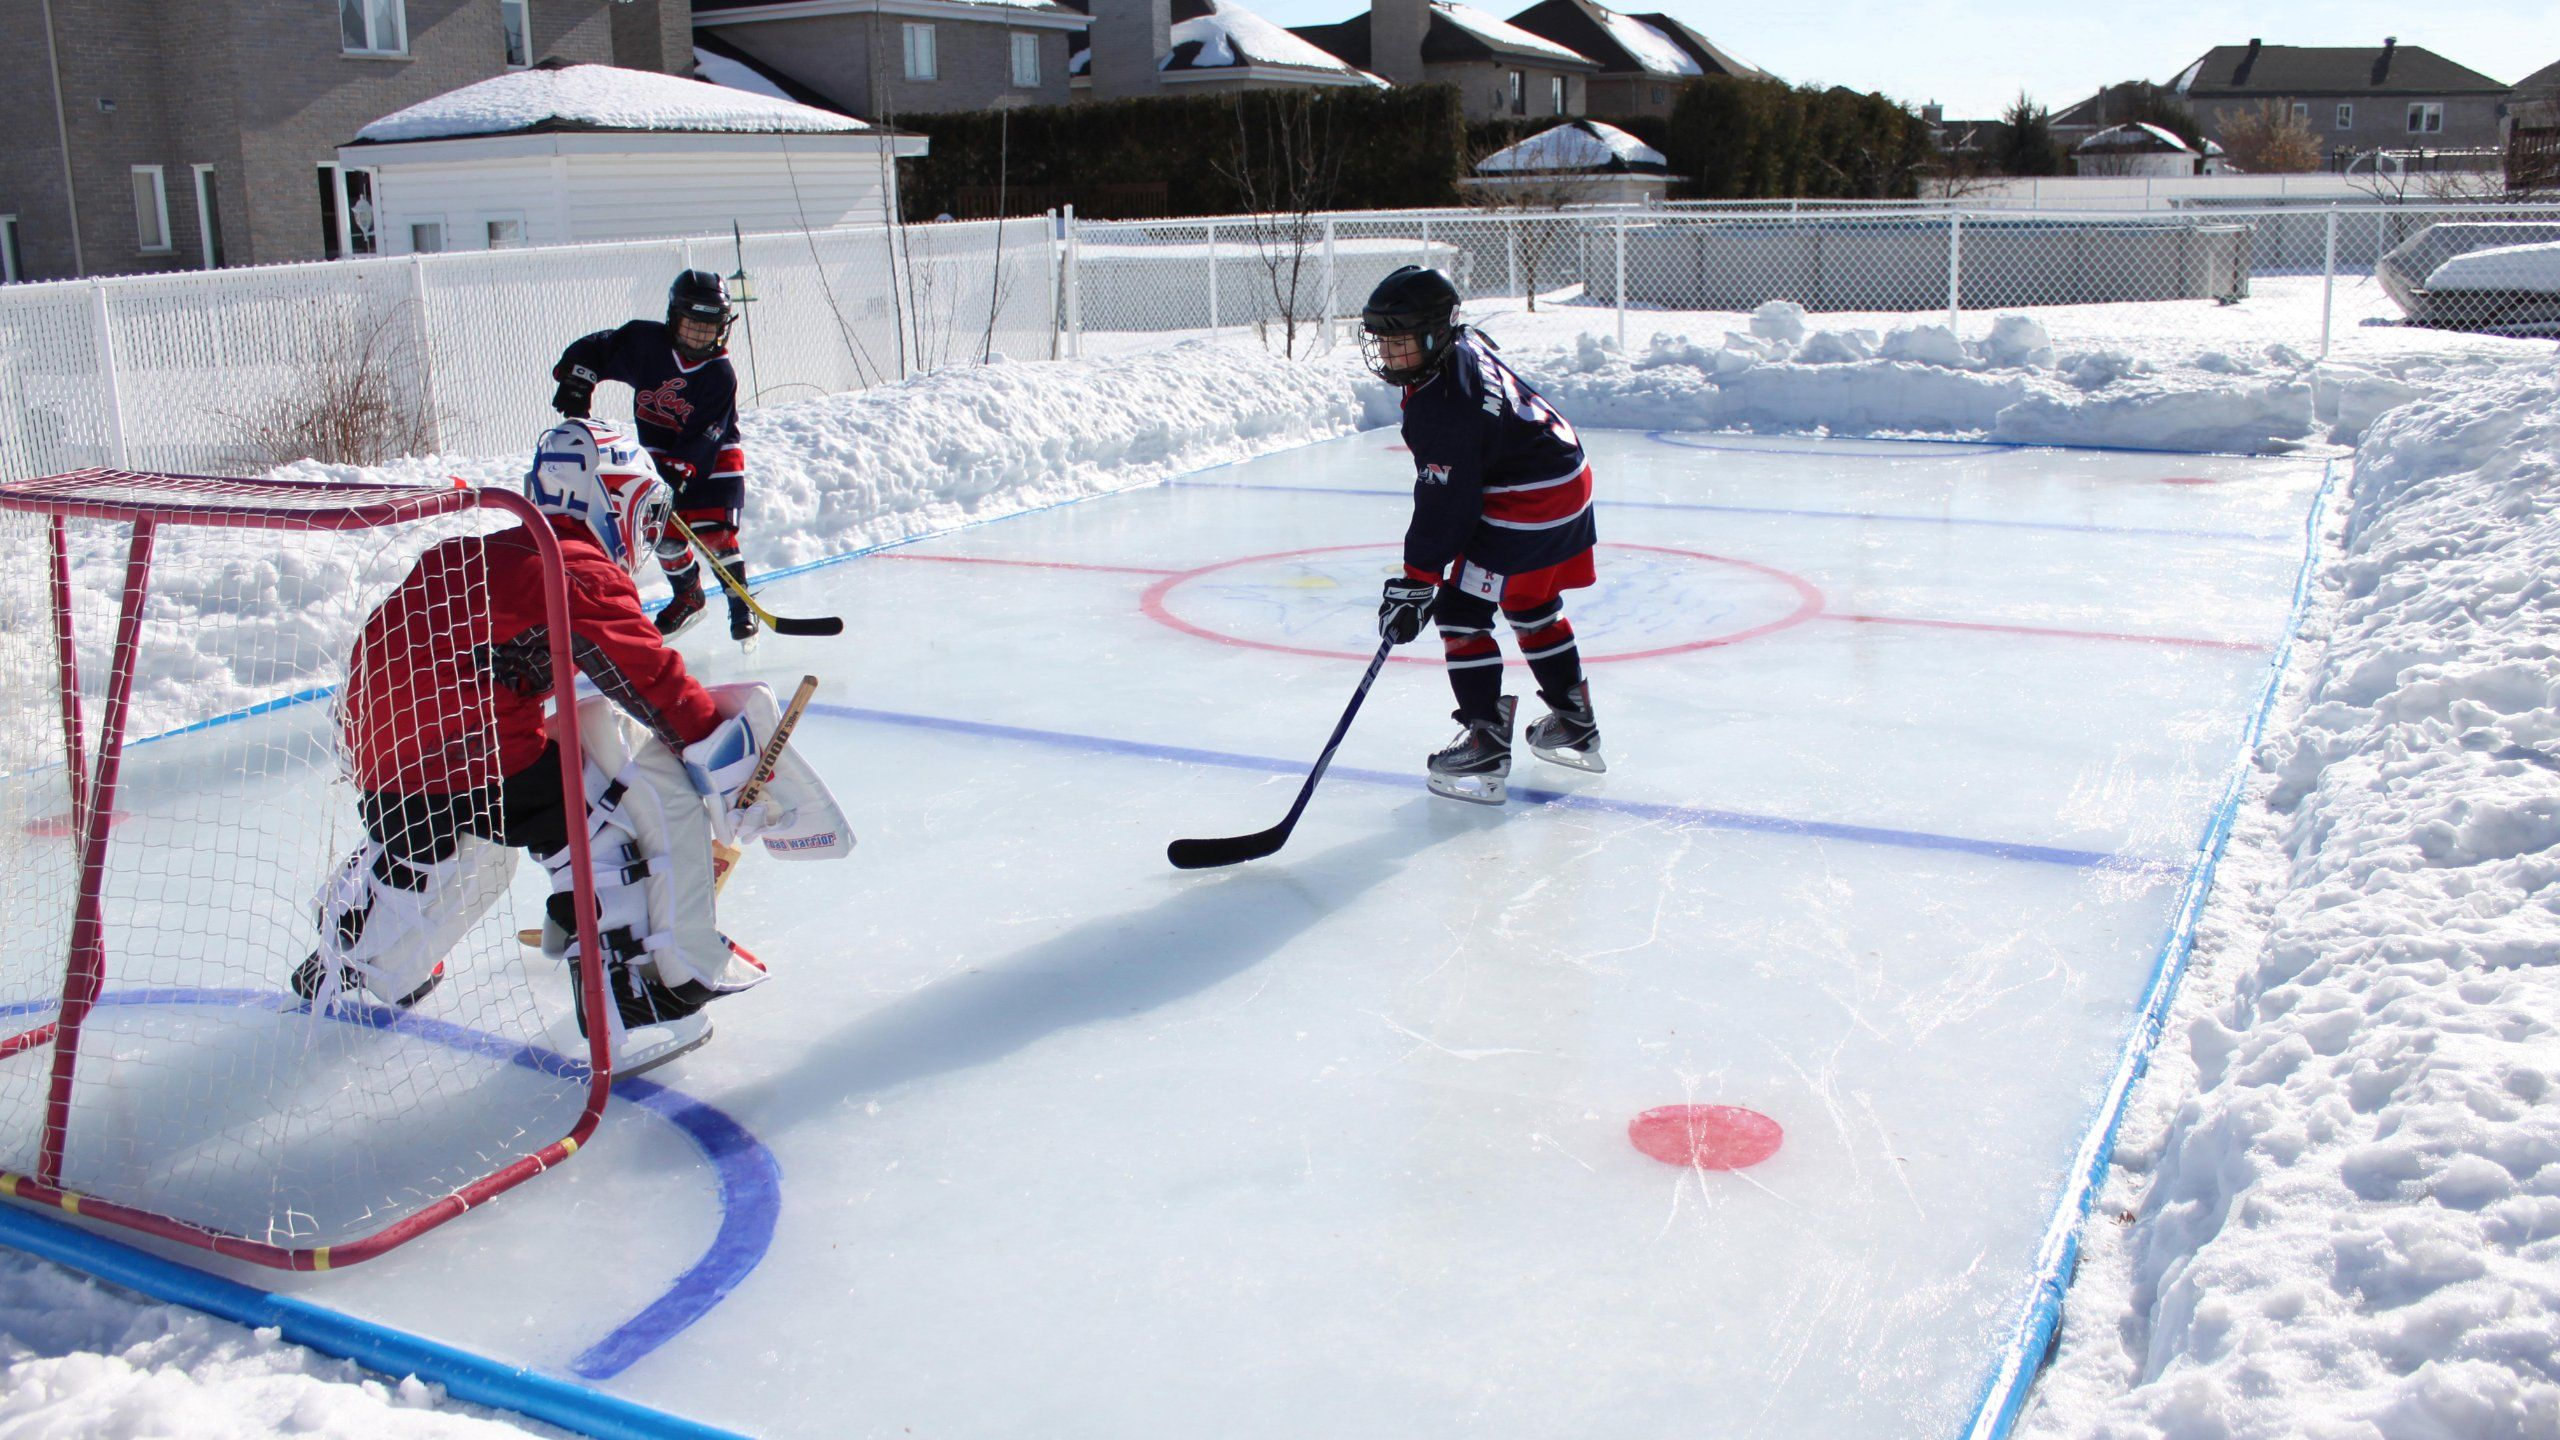 Ice Rink Kit If Ever End Up Somewhere Ridiculously Cold Cough Cough North Dakota Cough Ice Hockey Rink Backyard Hockey Rink Hockey Rink Best backyard skating rink kit